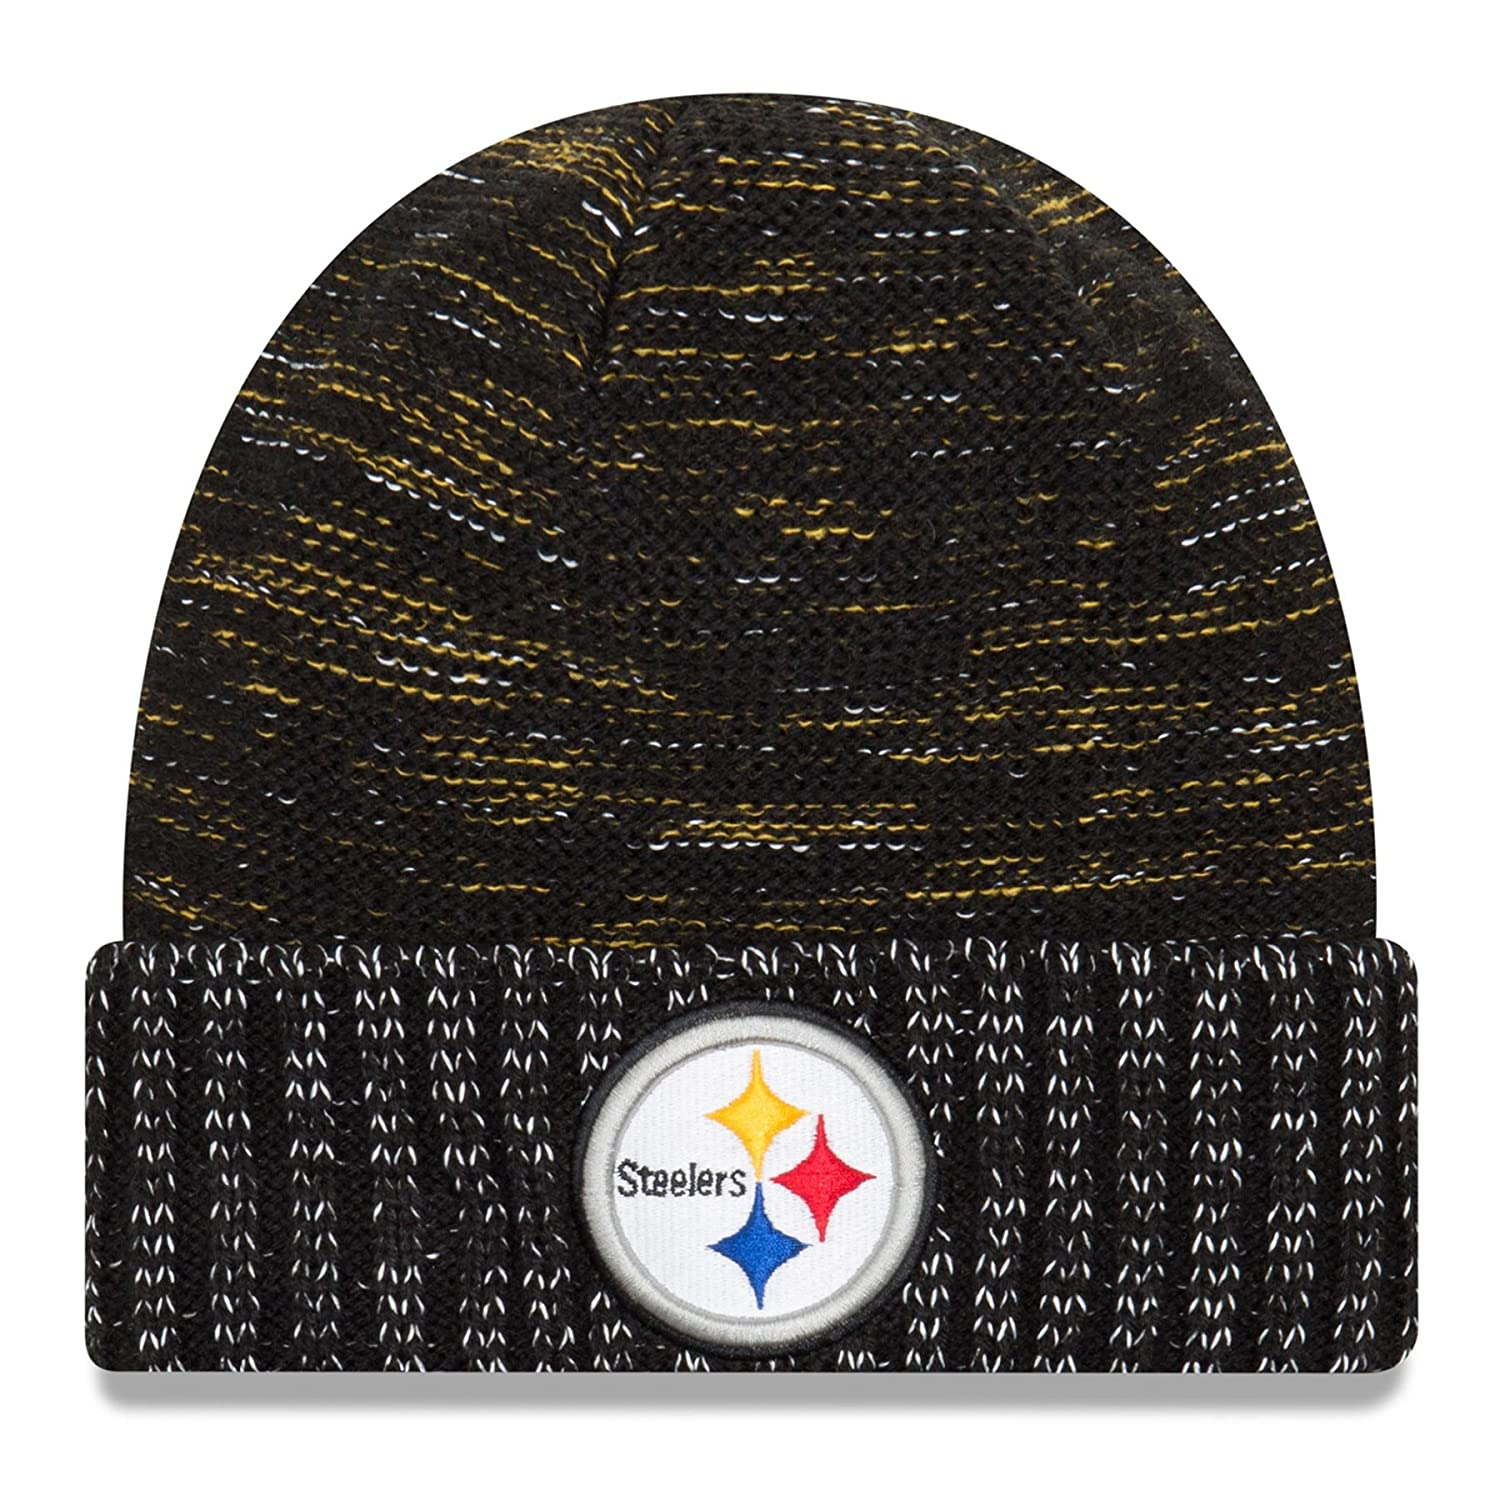 ... sweden amazon new era pittsburgh steelers knit beanie cap hat nfl 2017  color rush 11461025 black f232a9d35